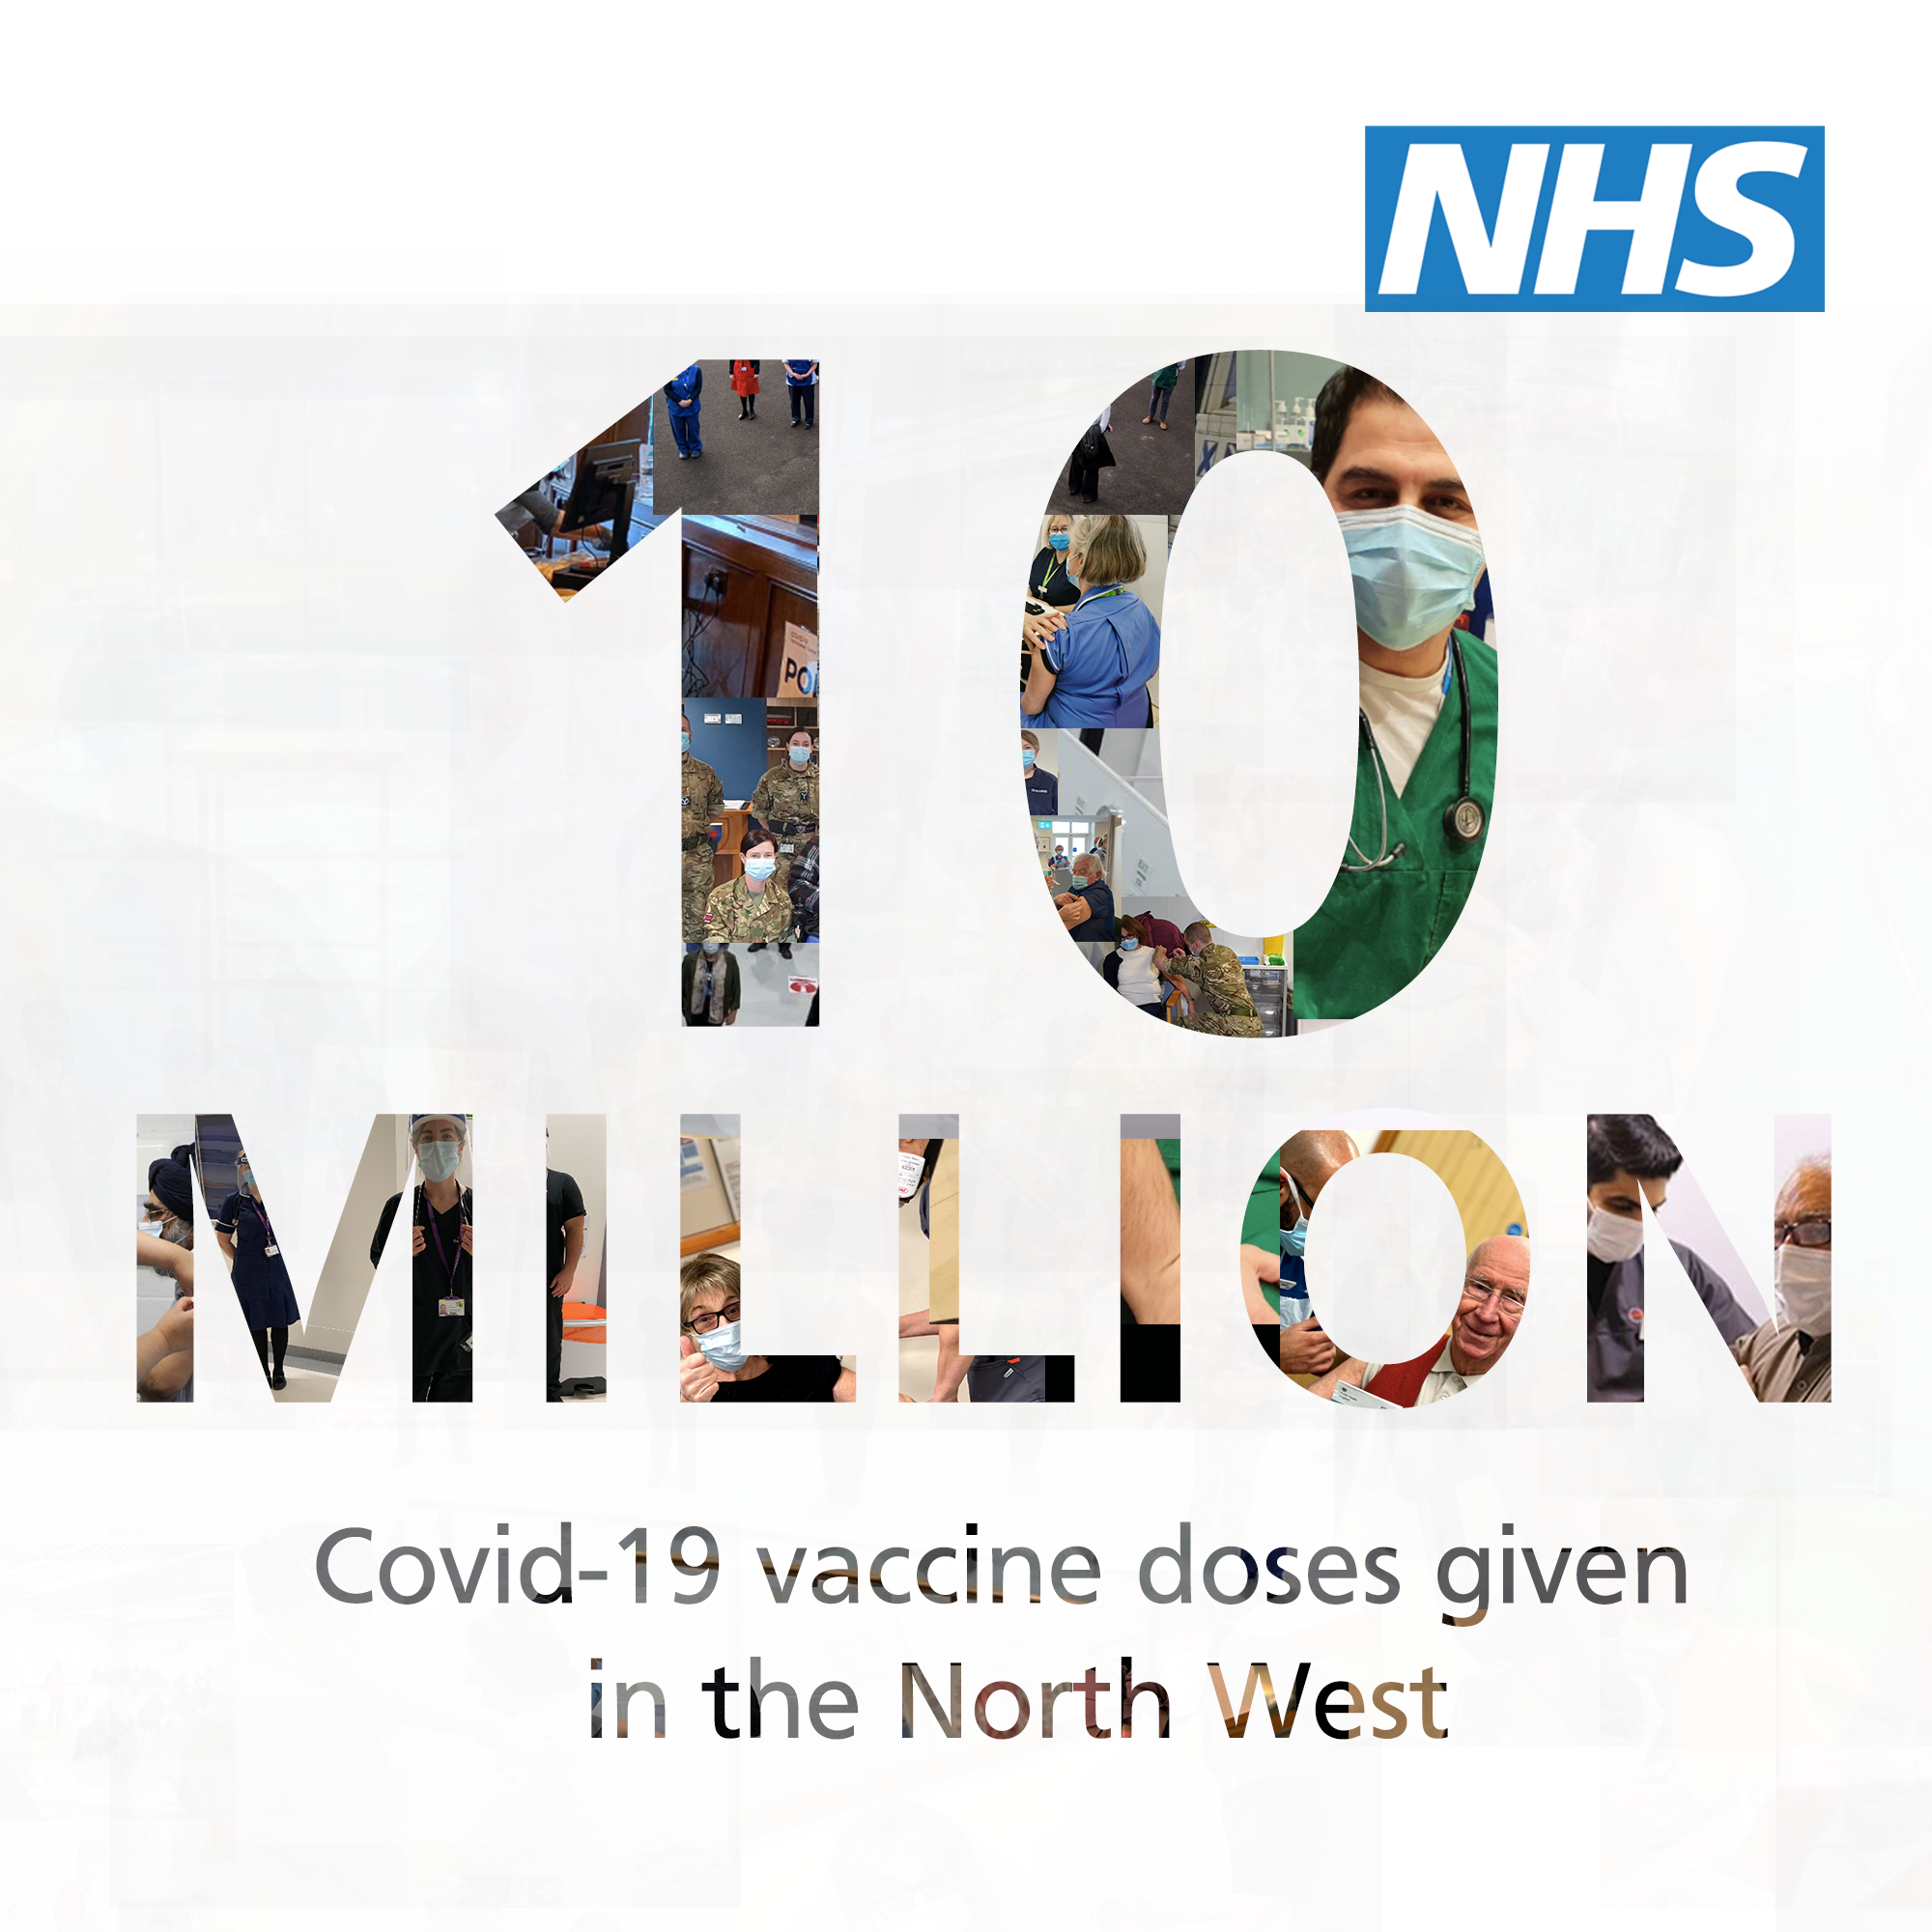 10 million doses of the covid vaccine given